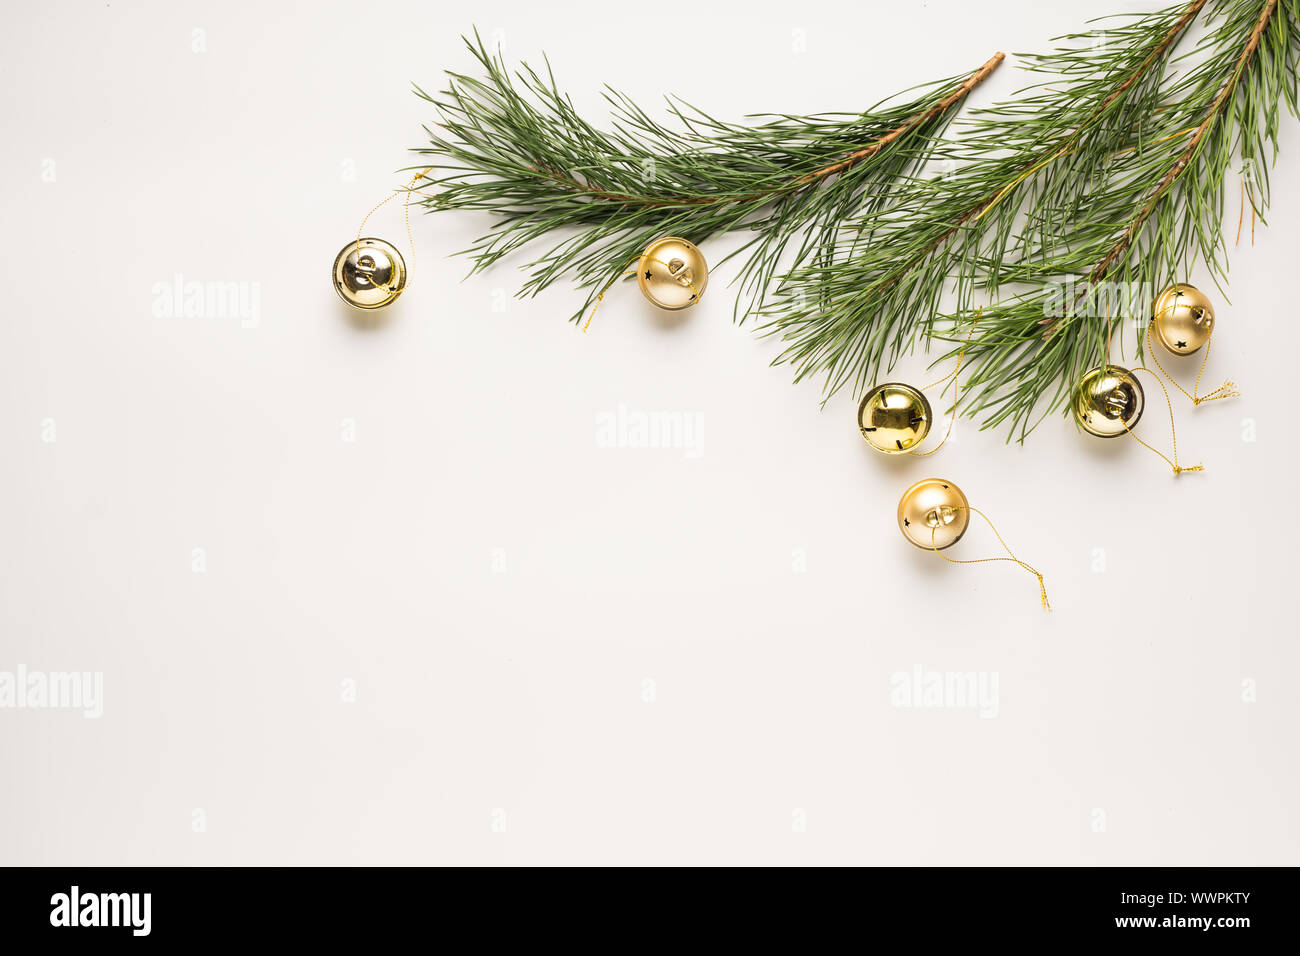 christmas tree branches, business cards, pine cones, flat lay, fir tree, merry christmas, branches cones, rose hips Stock Photo